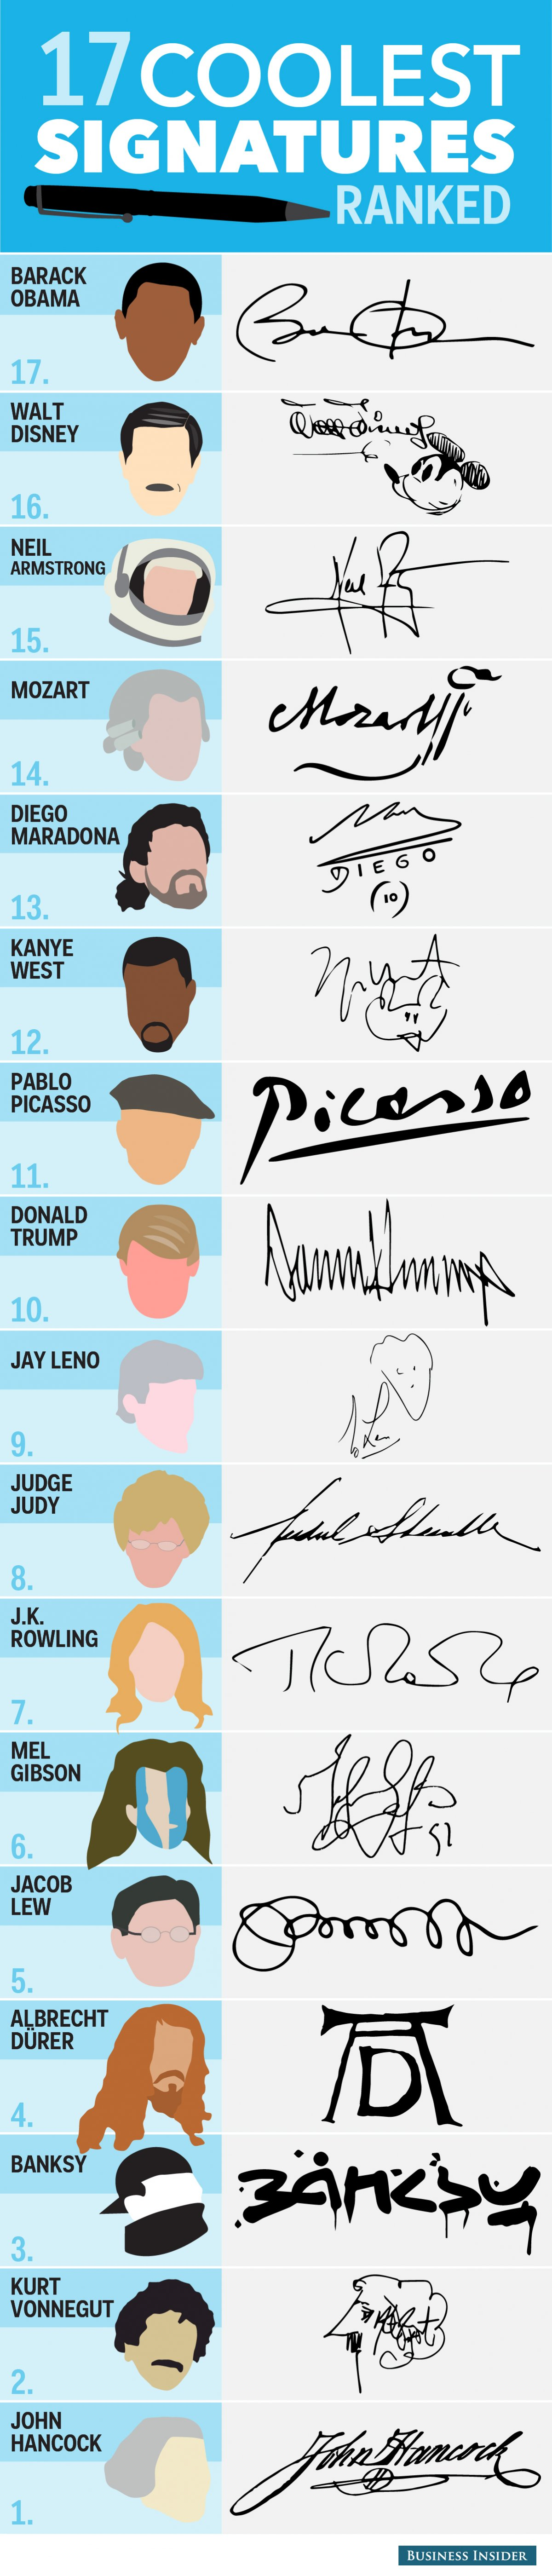 Infographic-The-17-Coolest-Signatures-Ranked